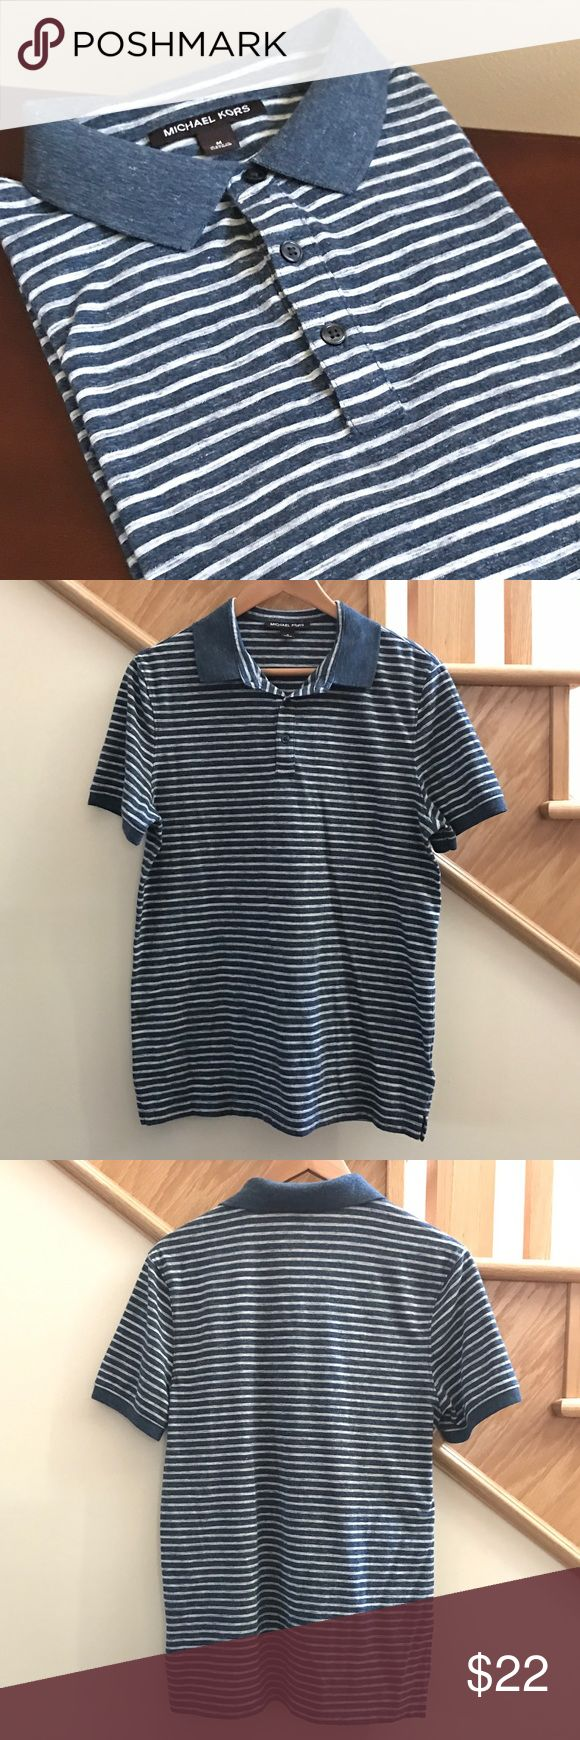 Men's Michael Kors Striped Polo Shirt Gray and blue striped polo shirt with blue collar by Michael Kors. 60% cotton 40% poly. size M. Very gently used. All men's clothes I sell are my teenage son's and personally purchased by me. From Nordstrom. 🚫Trades🚫PP. Michael Kors Shirts Polos